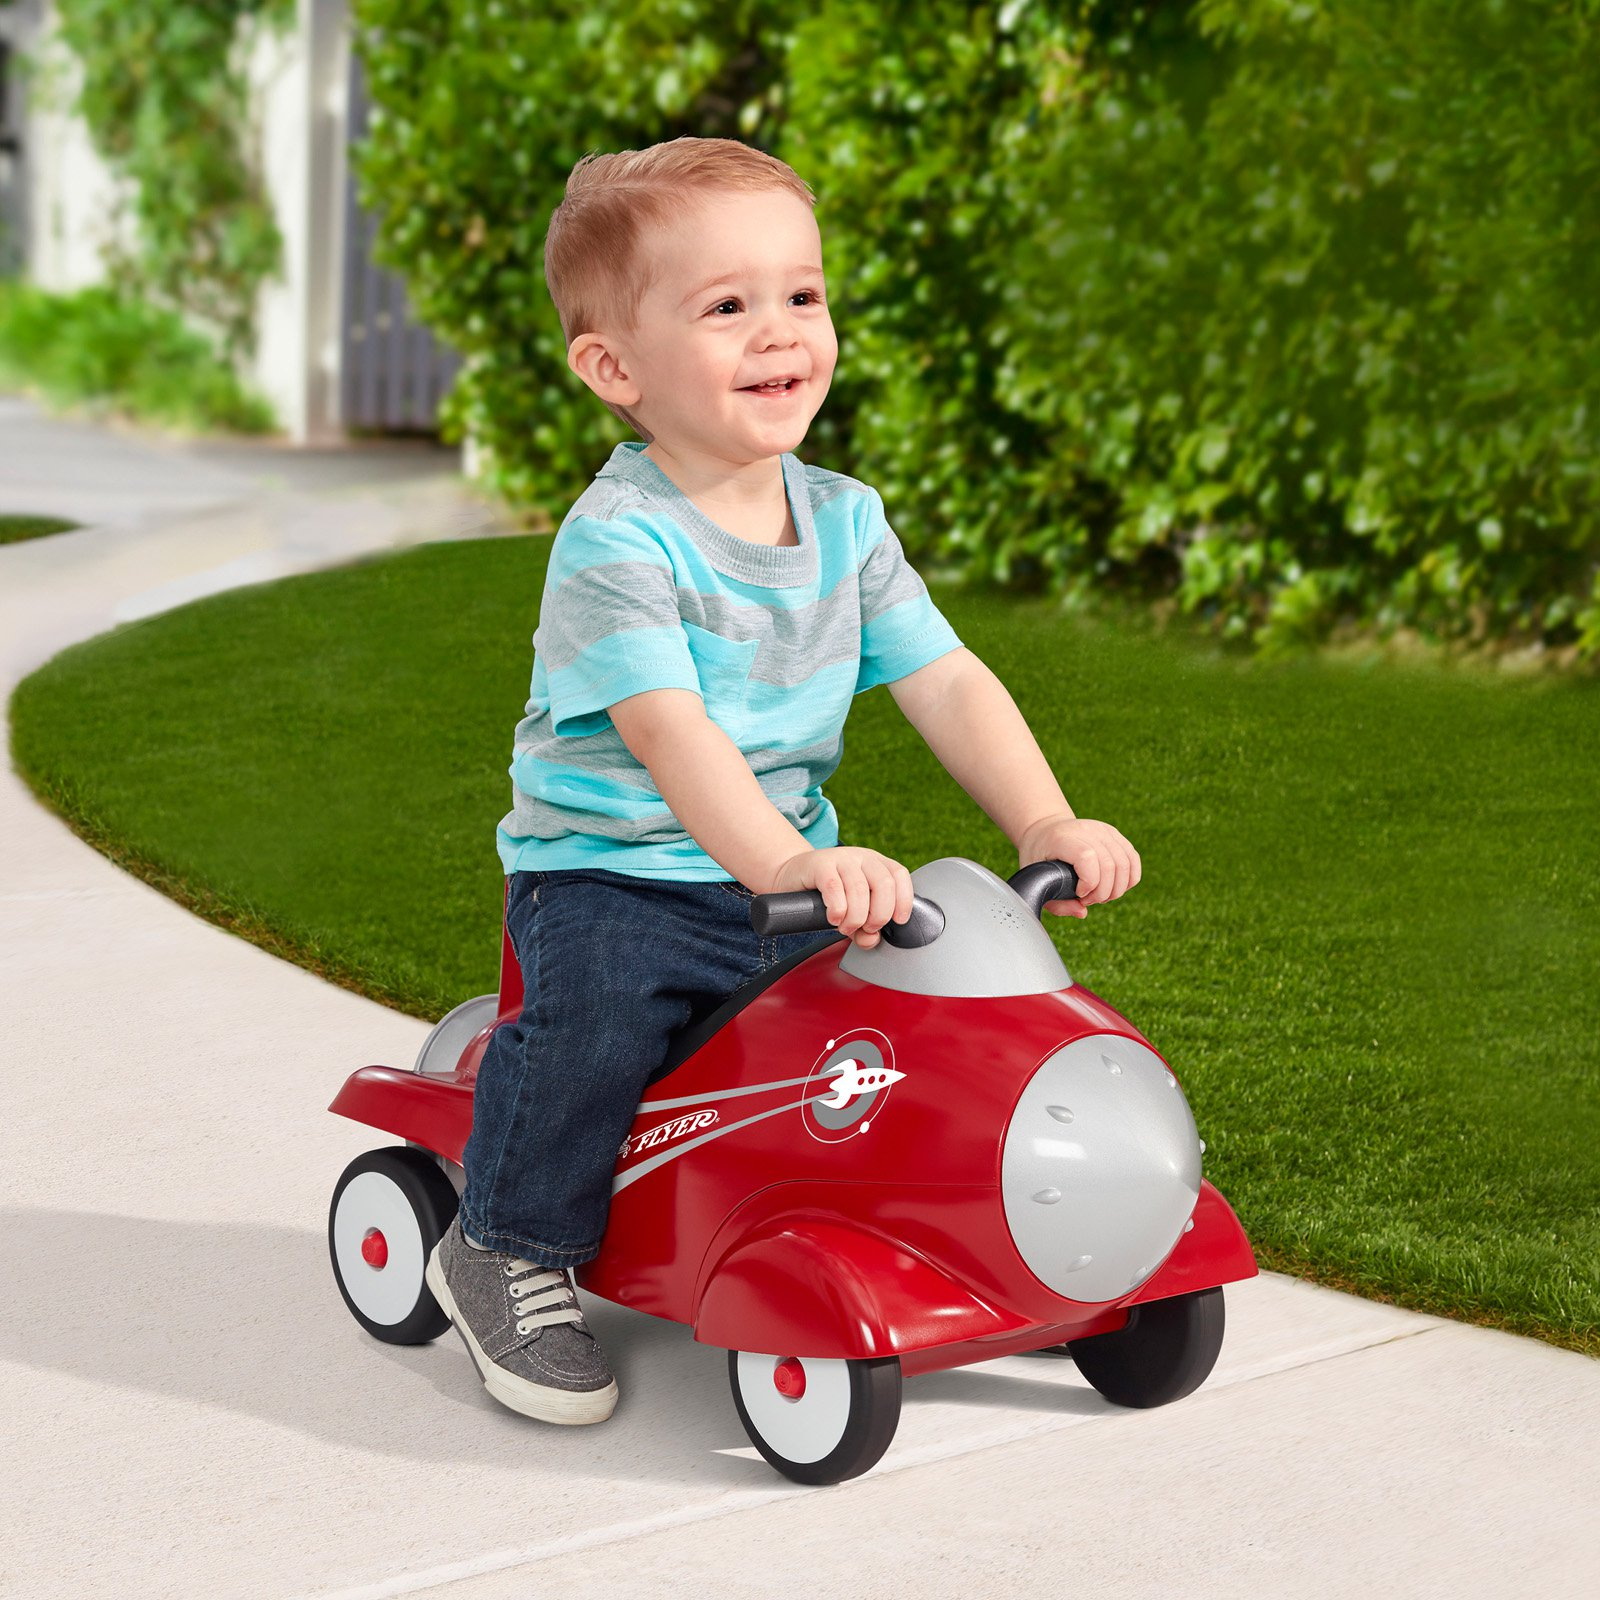 Radio Flyer Retro Rocket Riding Push Toy